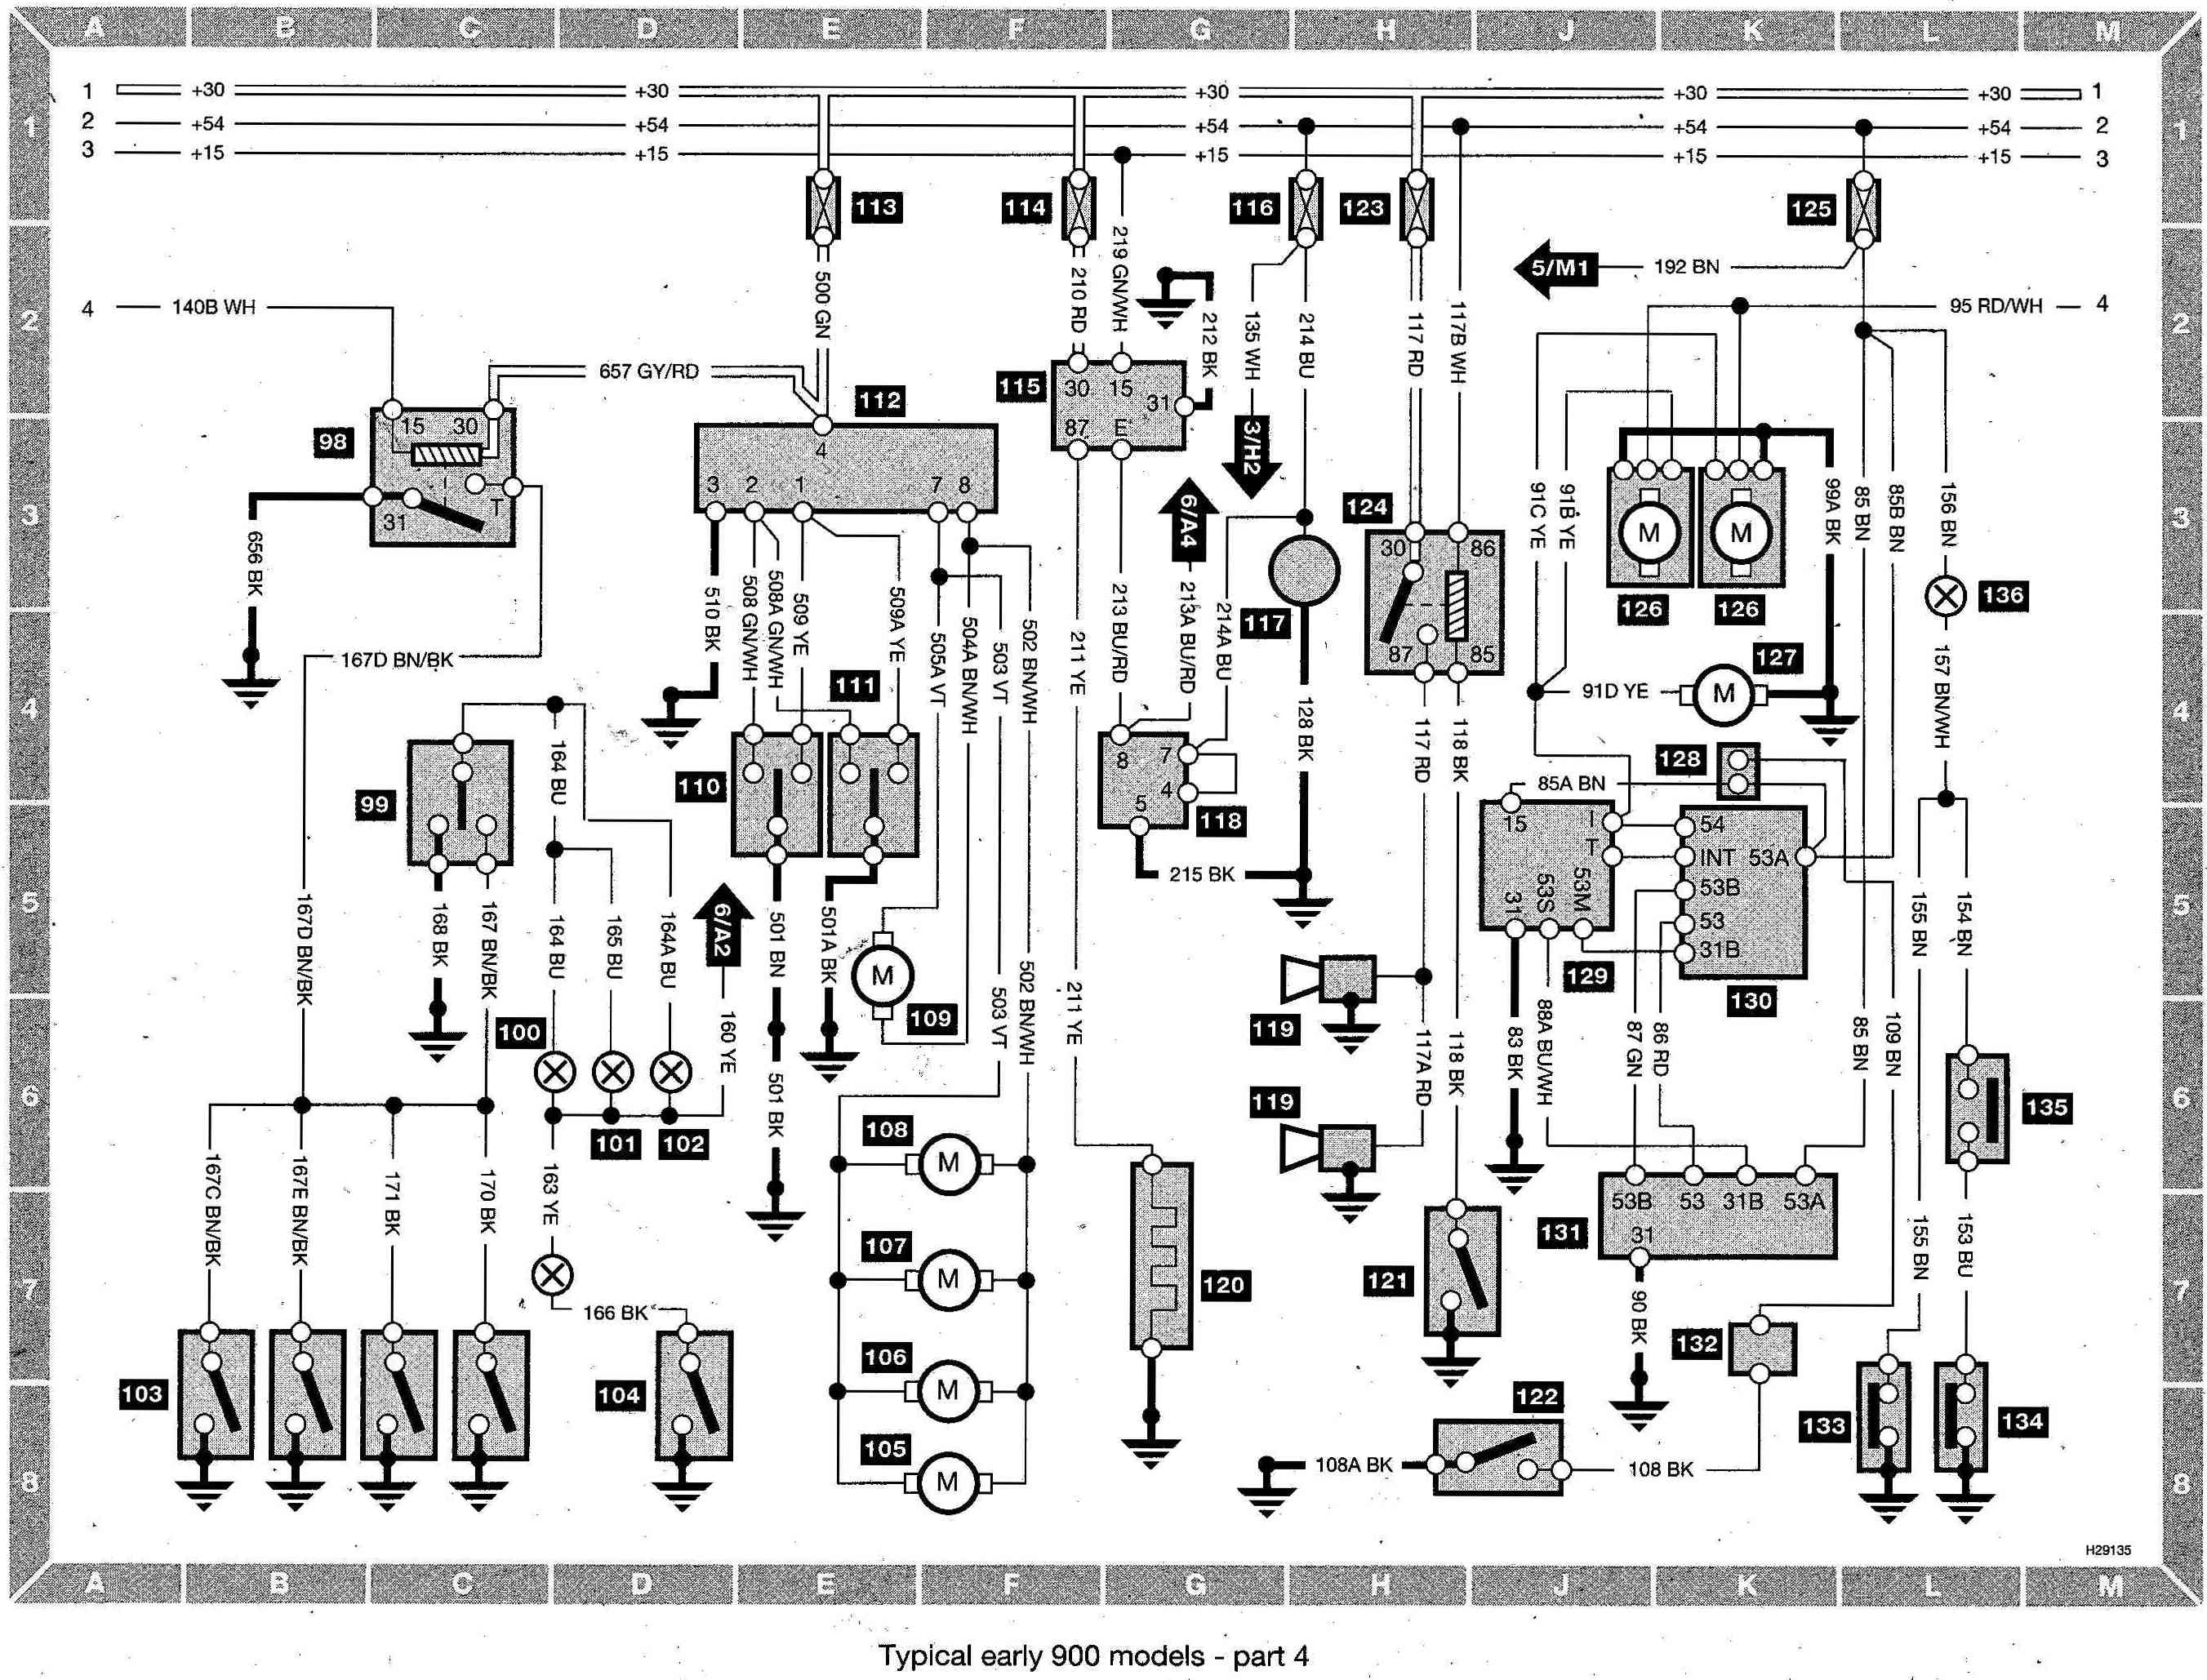 saab 900 wiring diagram schematic wiring diagram wire center u2022 rh linxglobal co 2002 Saab 9 3 SE Air Box Diagram Saab 900 Radio Wiring Diagram